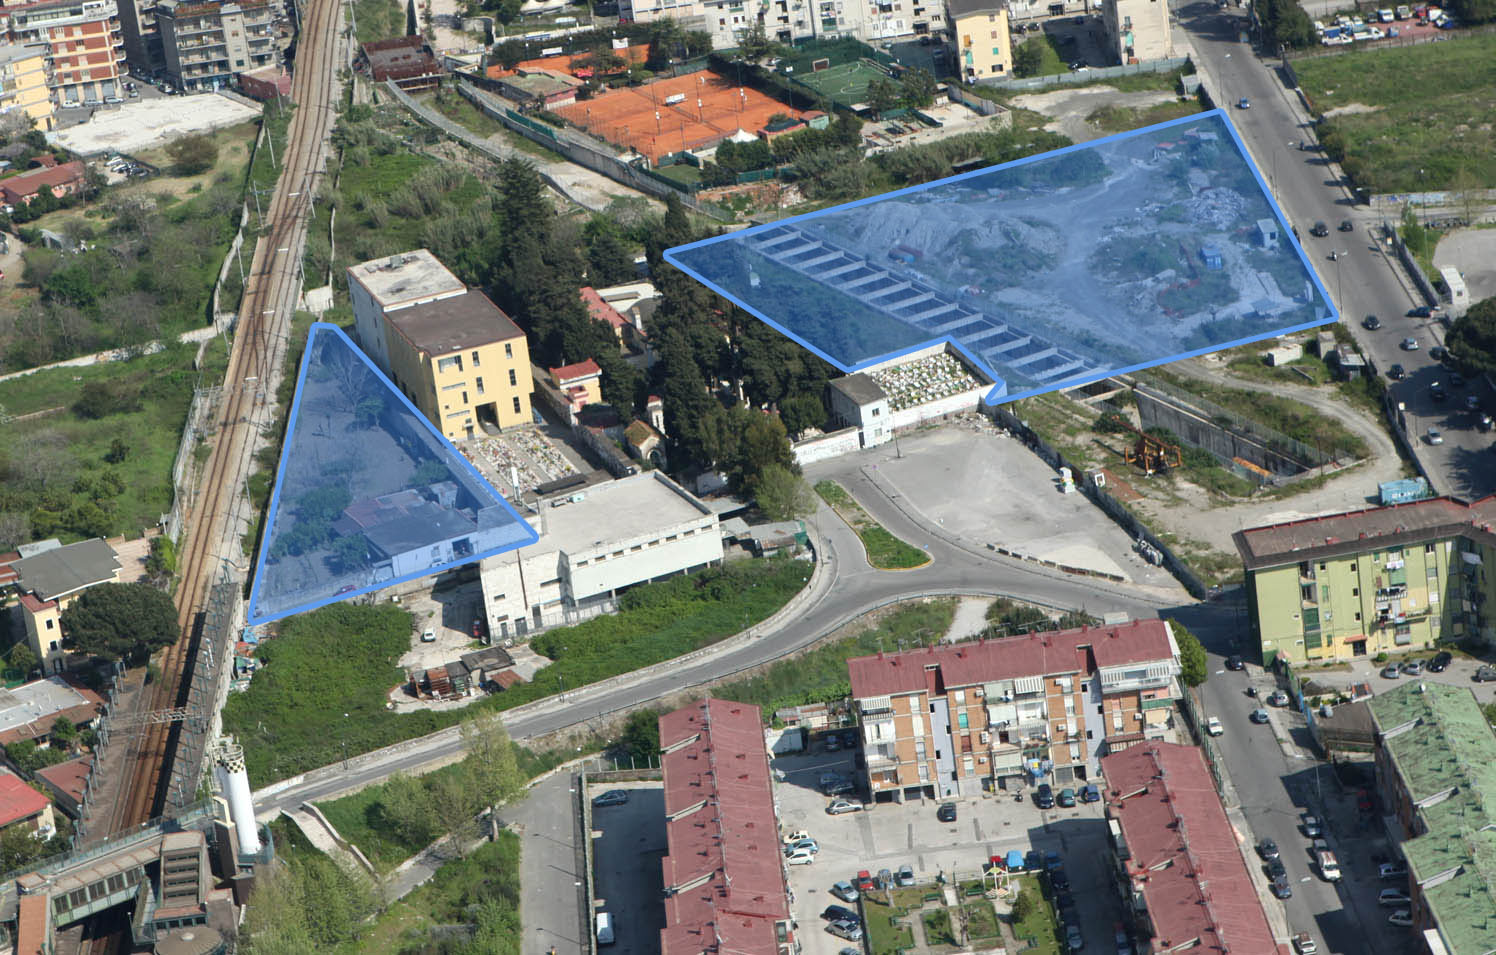 Naples Municipality – Project financing of Barra, Pianura and Soccavo cemeteries